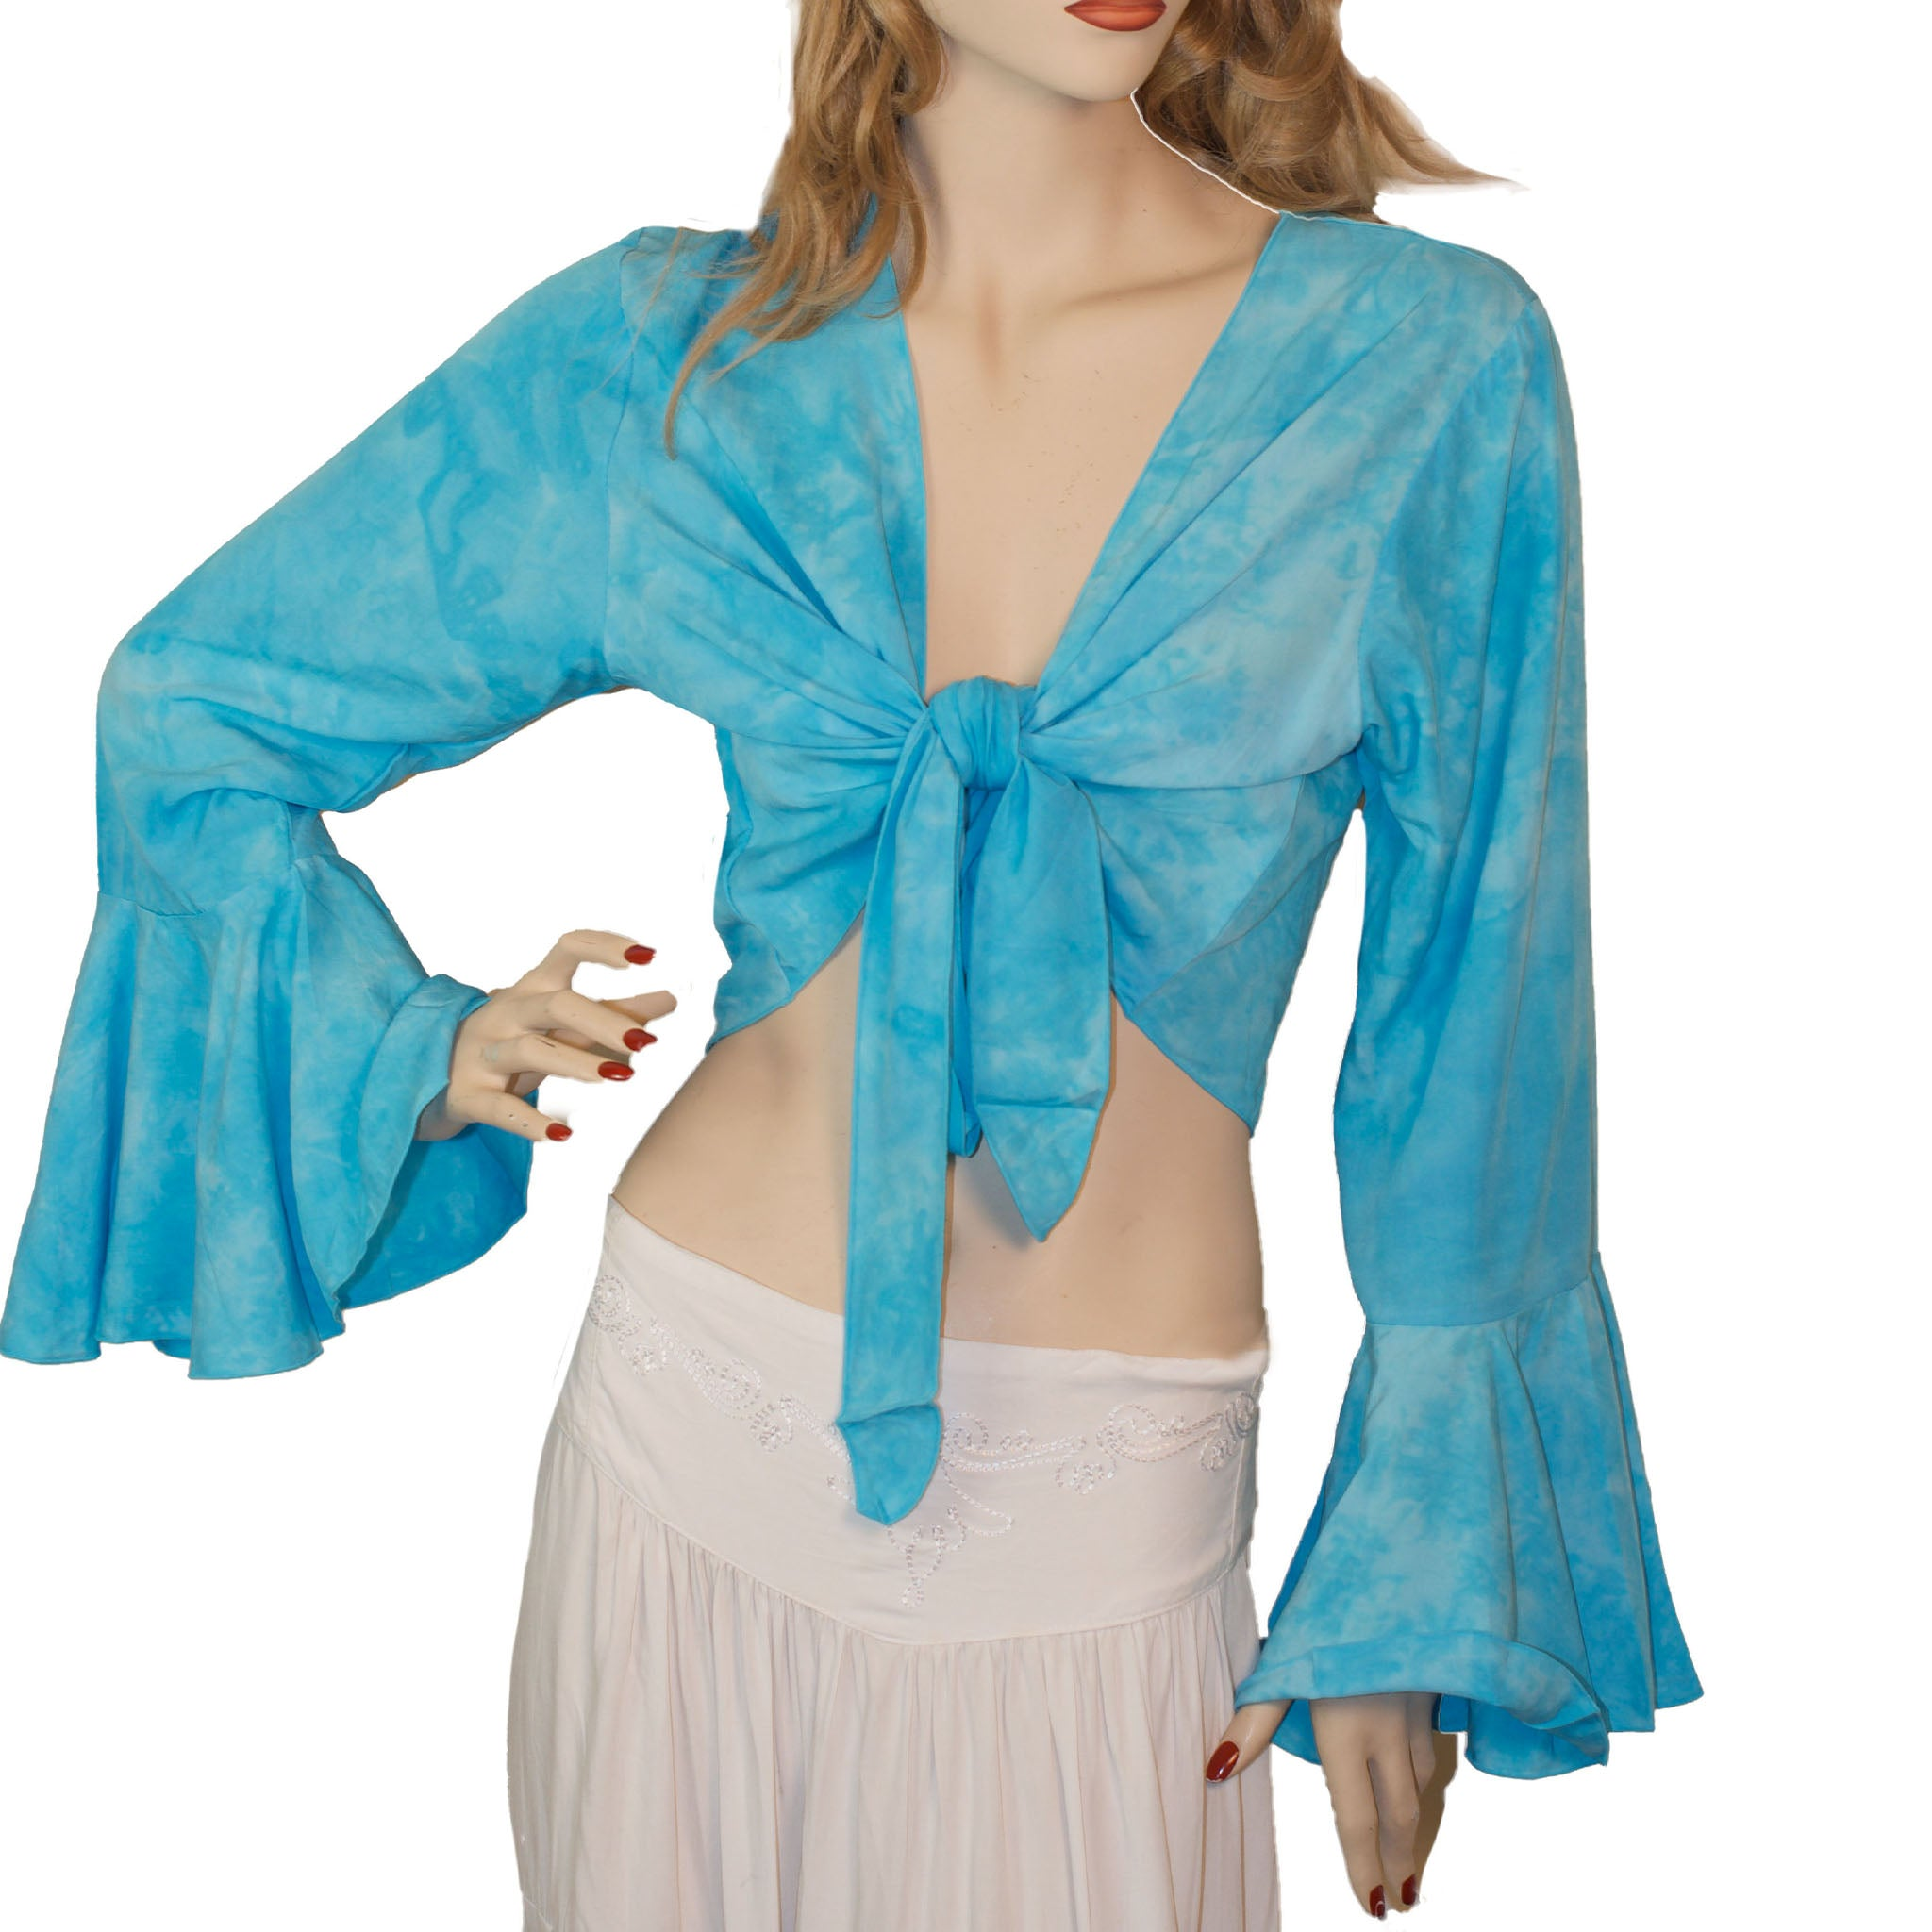 Womans Gypsy Top Renaissance Top Belly Dance Top Turquoise